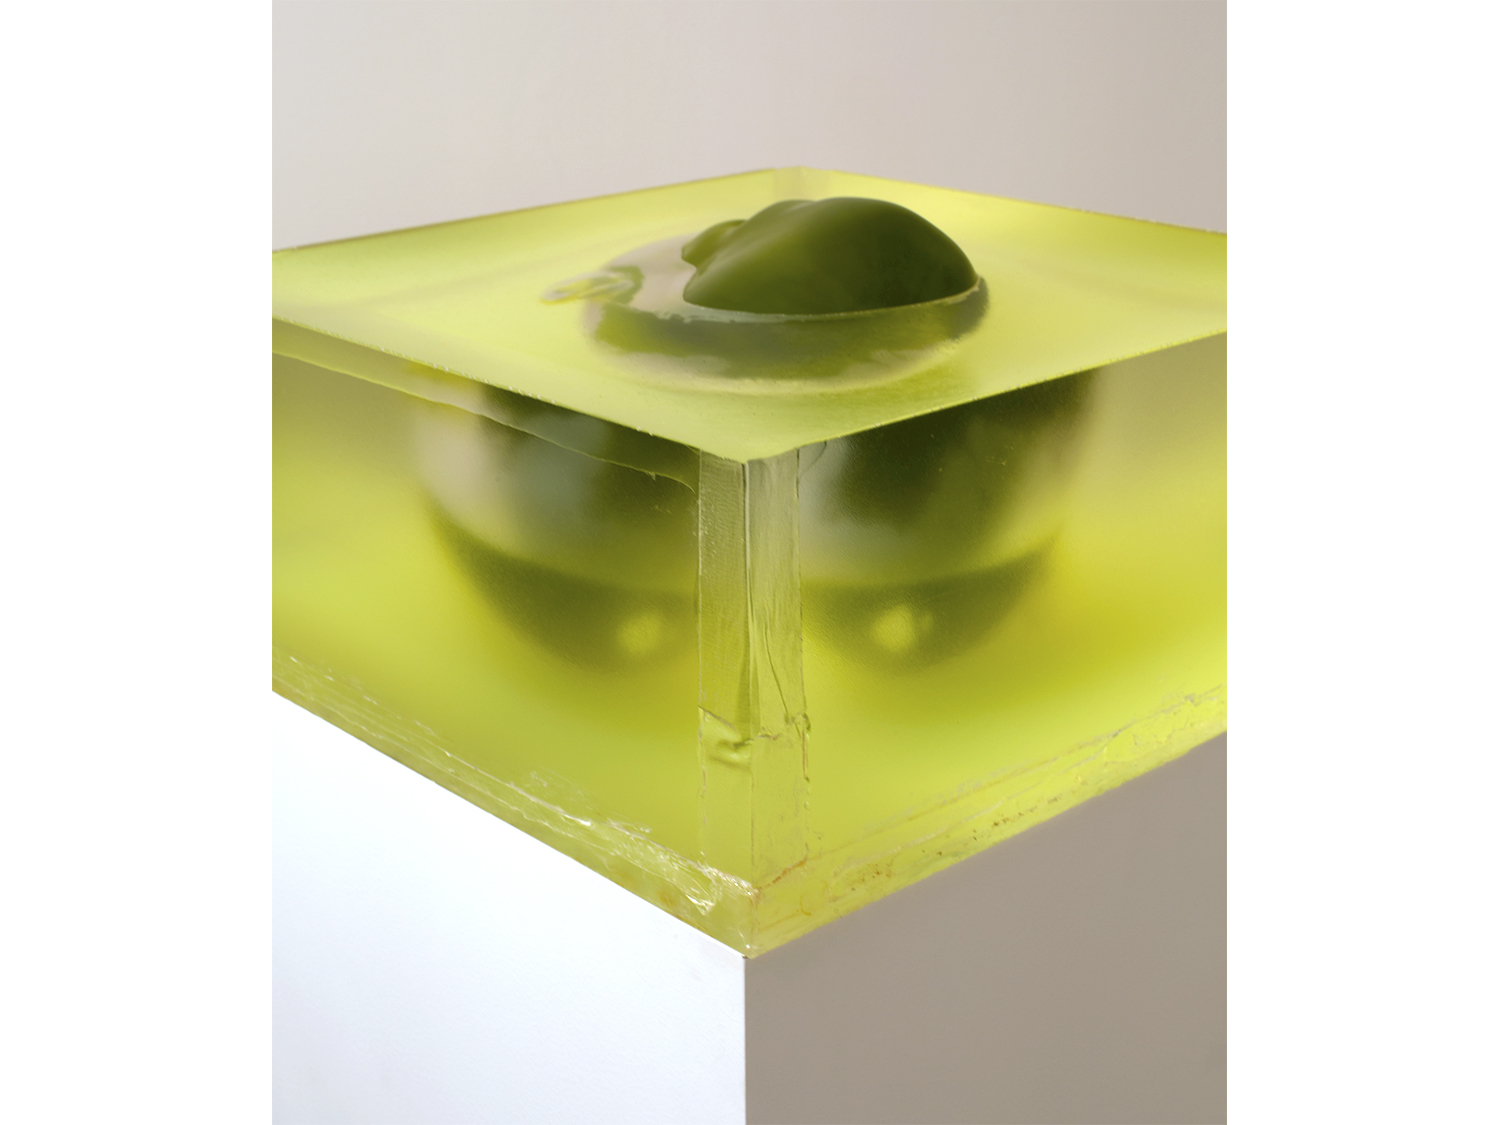 02 Pondick Floating Green (RP-116).jpg